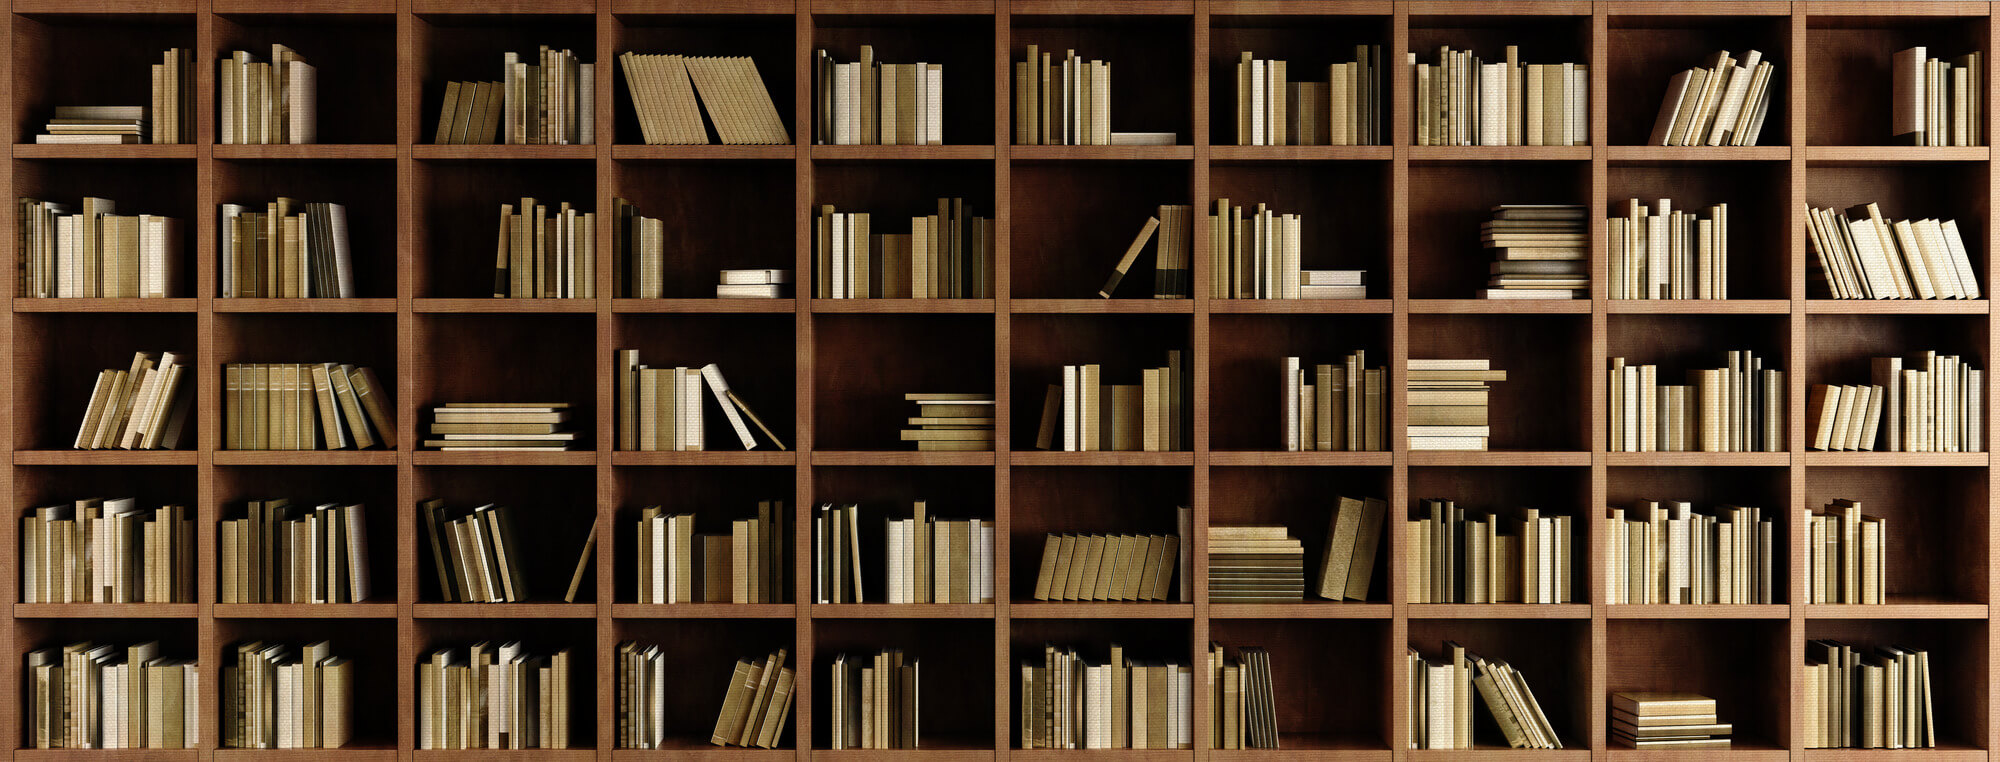 Natural Bookcase Wallpaper Mural Wall Photo